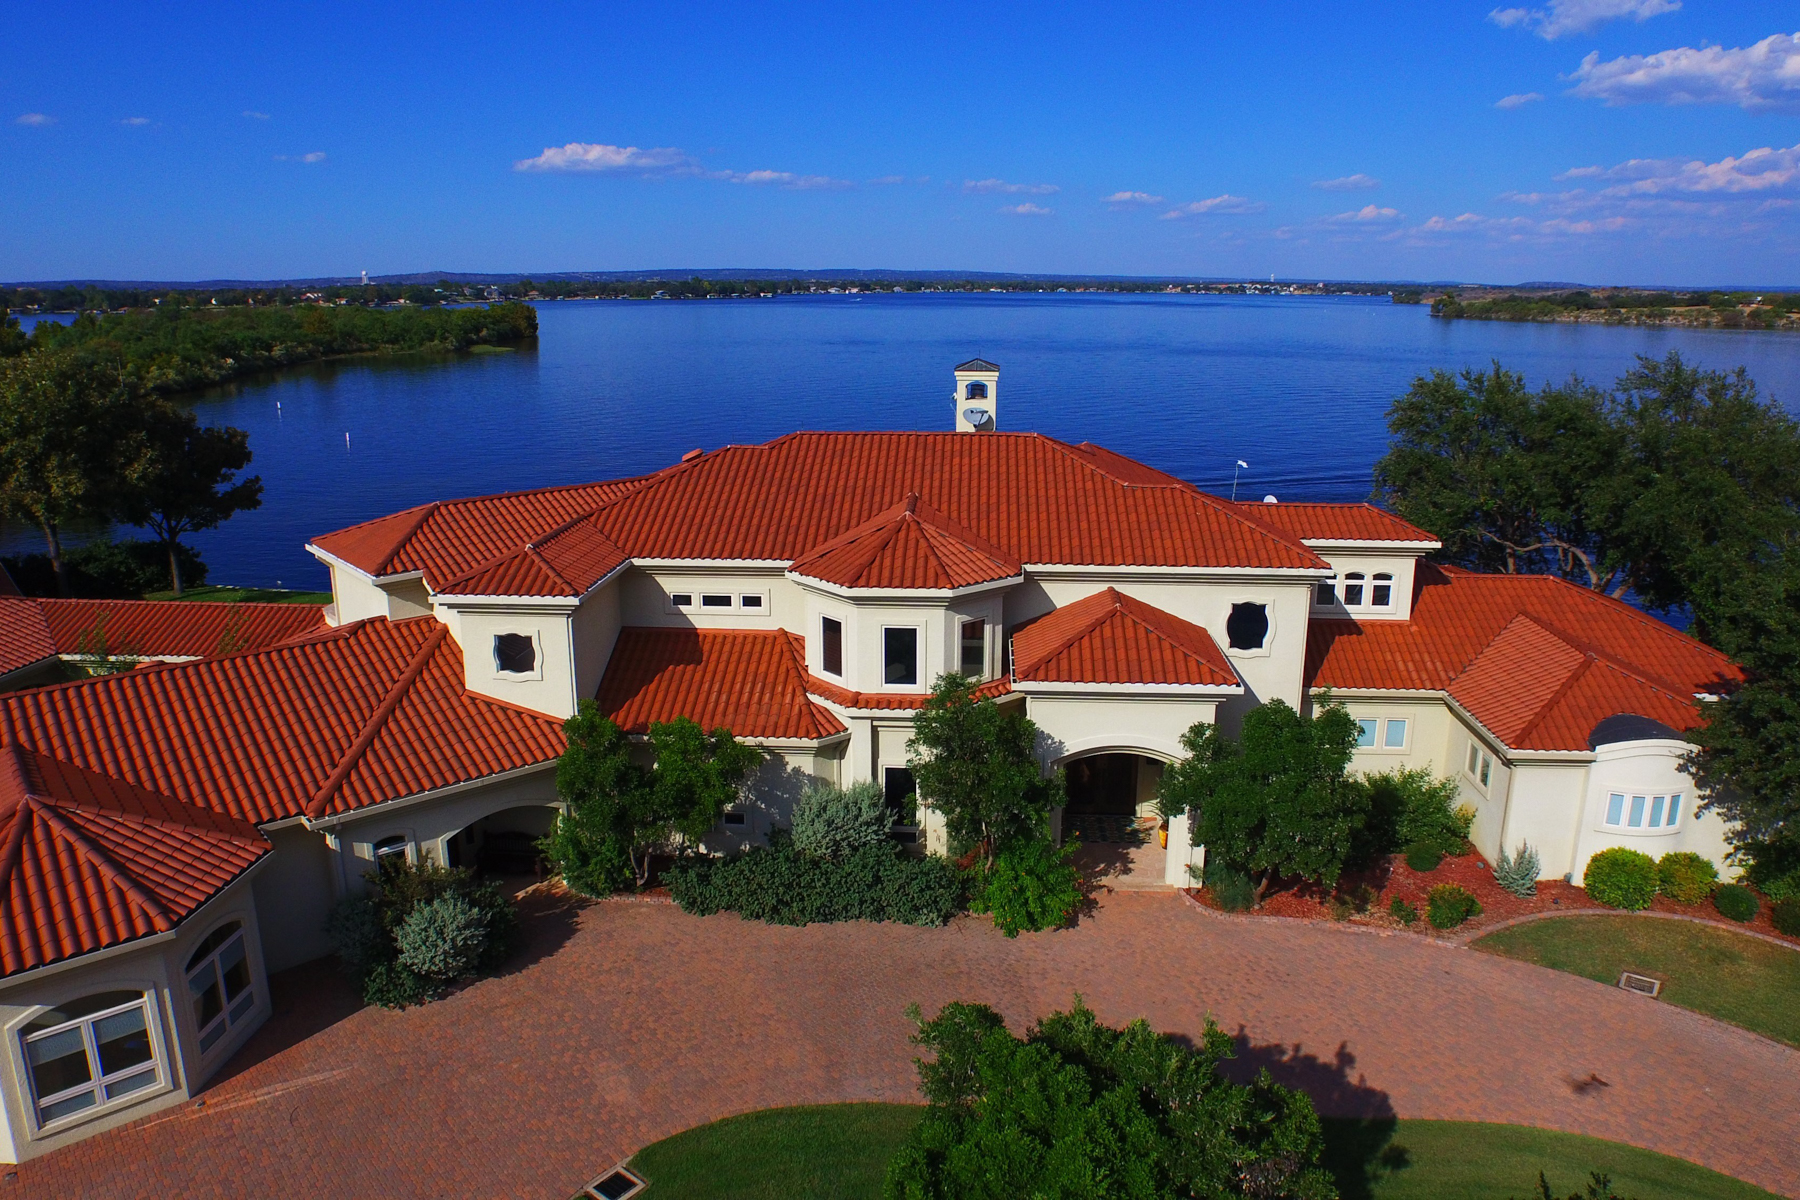 Additional photo for property listing at Imagine a Home Where the Artwork is the Lake & Sky 312 Wennmohs Pl Horseshoe Bay, Texas 78657 Estados Unidos